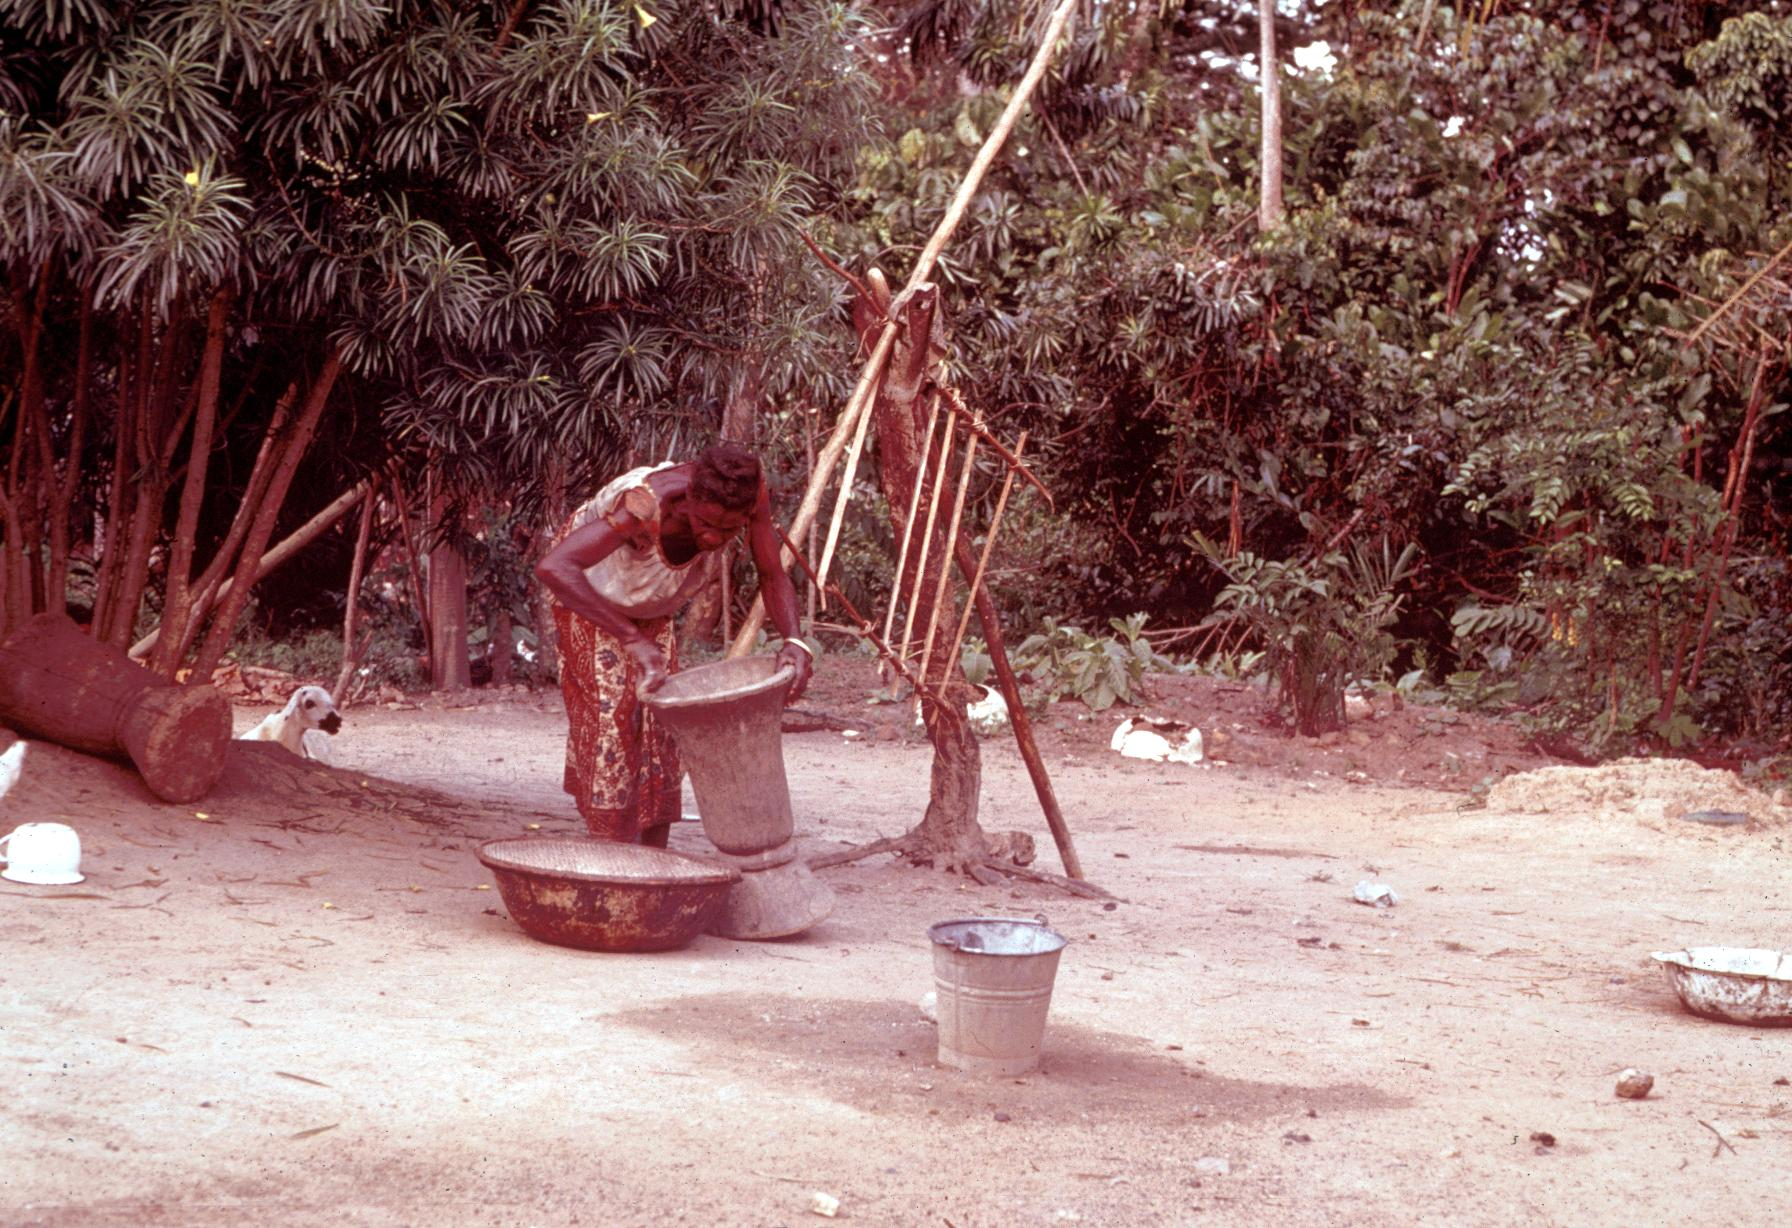 Woman Fanning Pounded Rice to Remove Chaff